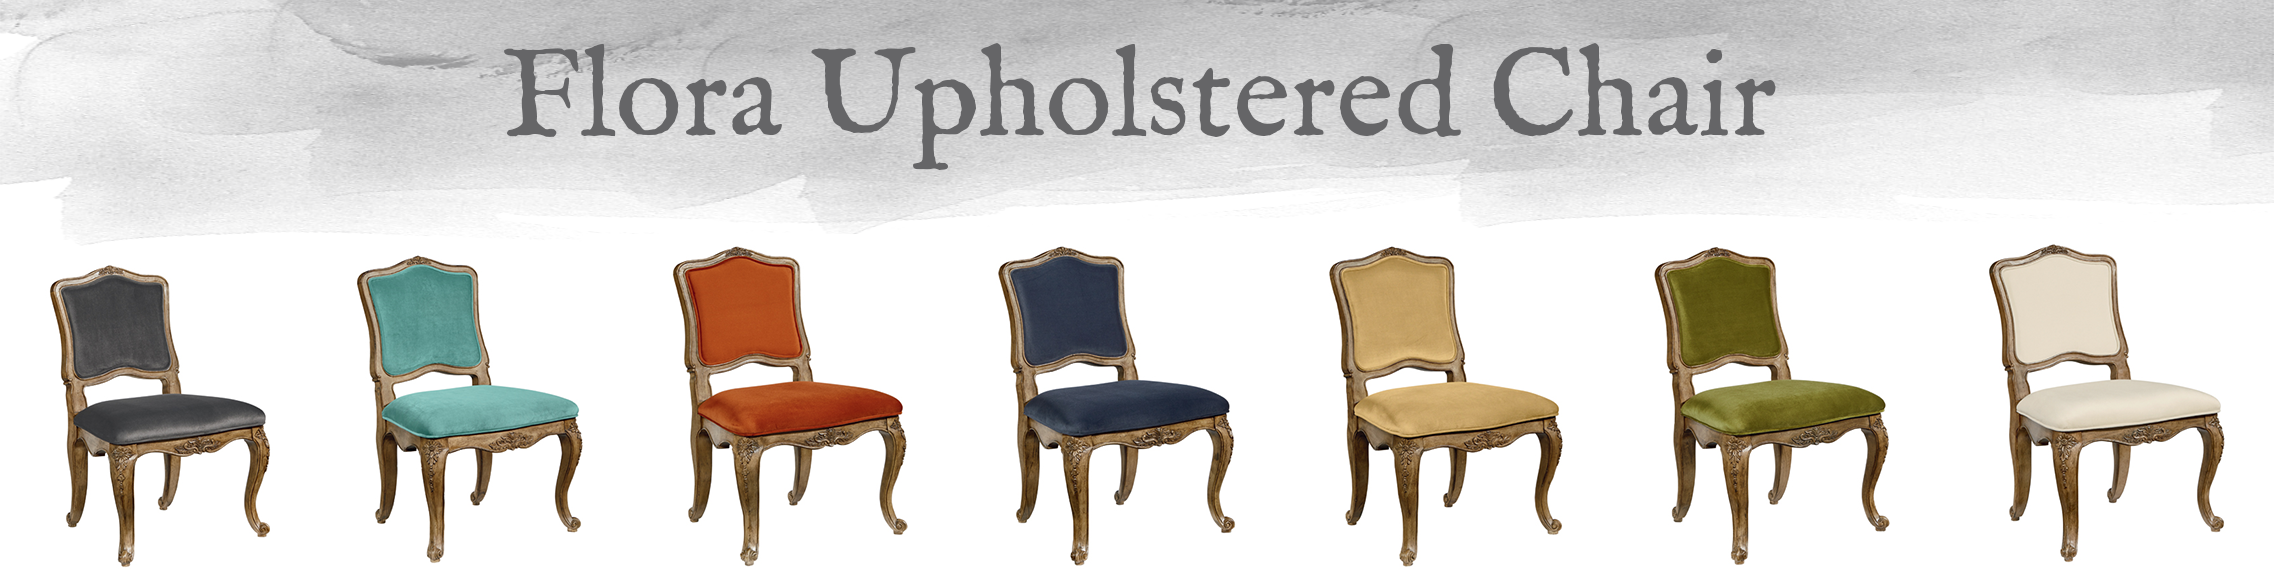 French-Inspired Flora Upholstered Chair